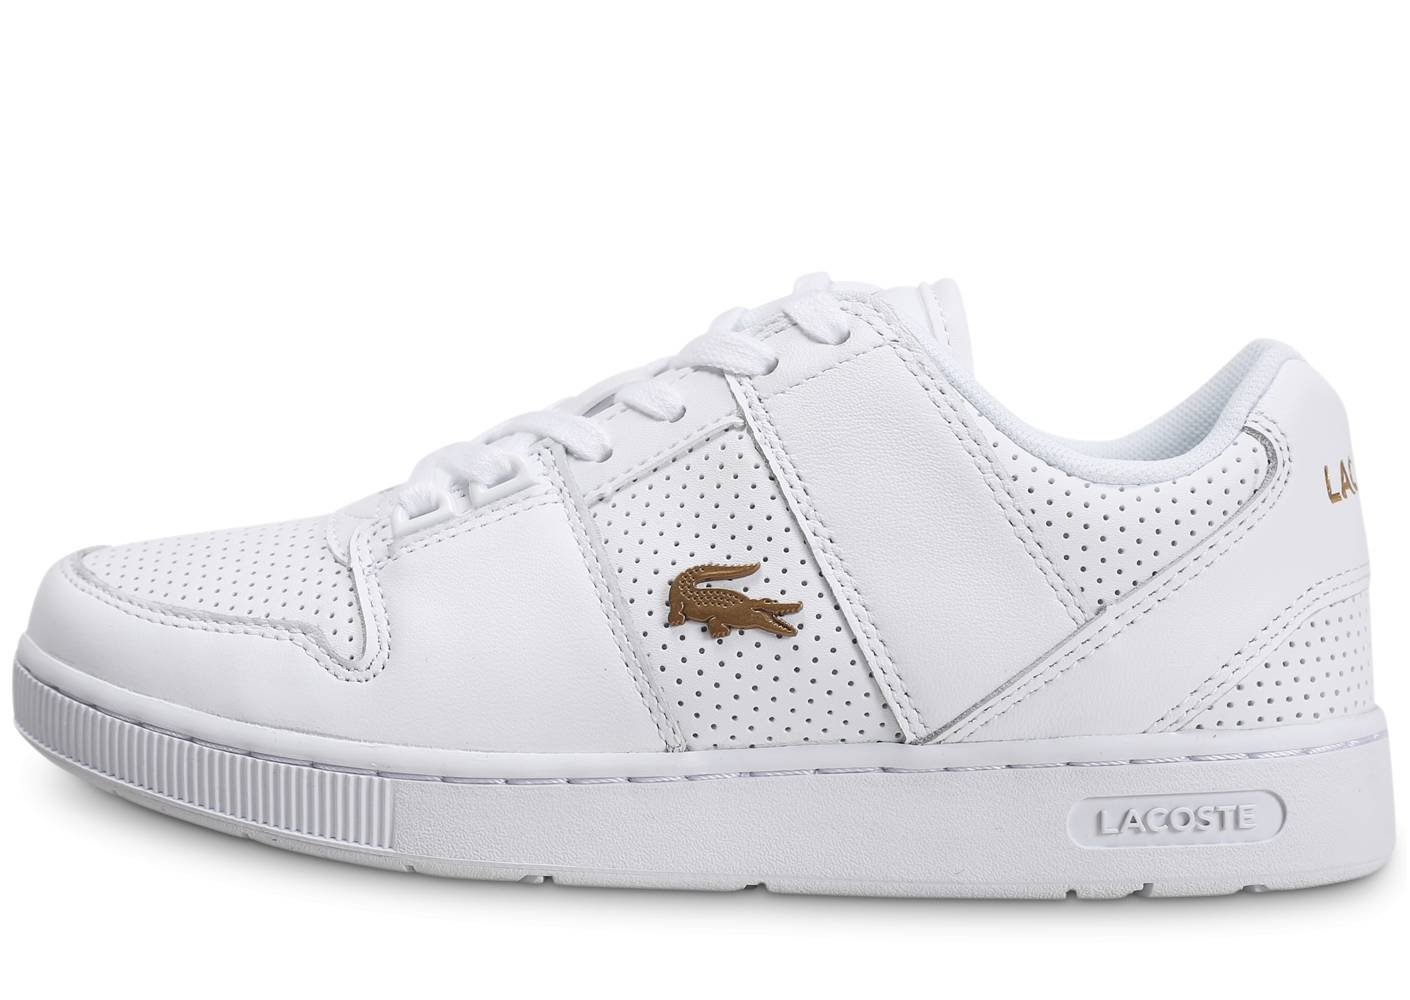 Lacoste Tennis Lacoste Thrill Blanc Or Femme 36